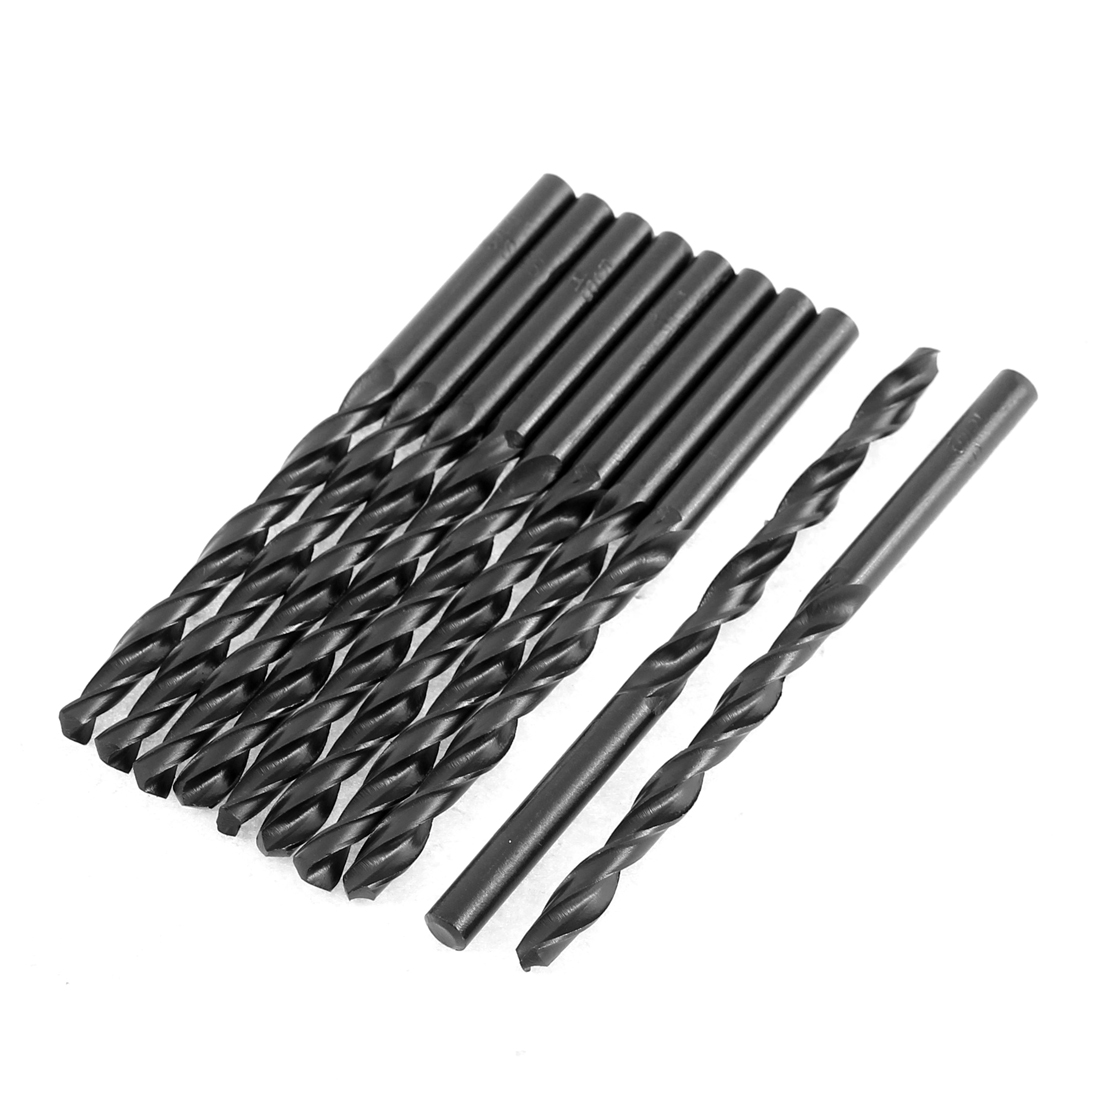 5mm Cutting Dia 85mm Length HSS Straight Shank Twist Drill Bit Black 10pcs